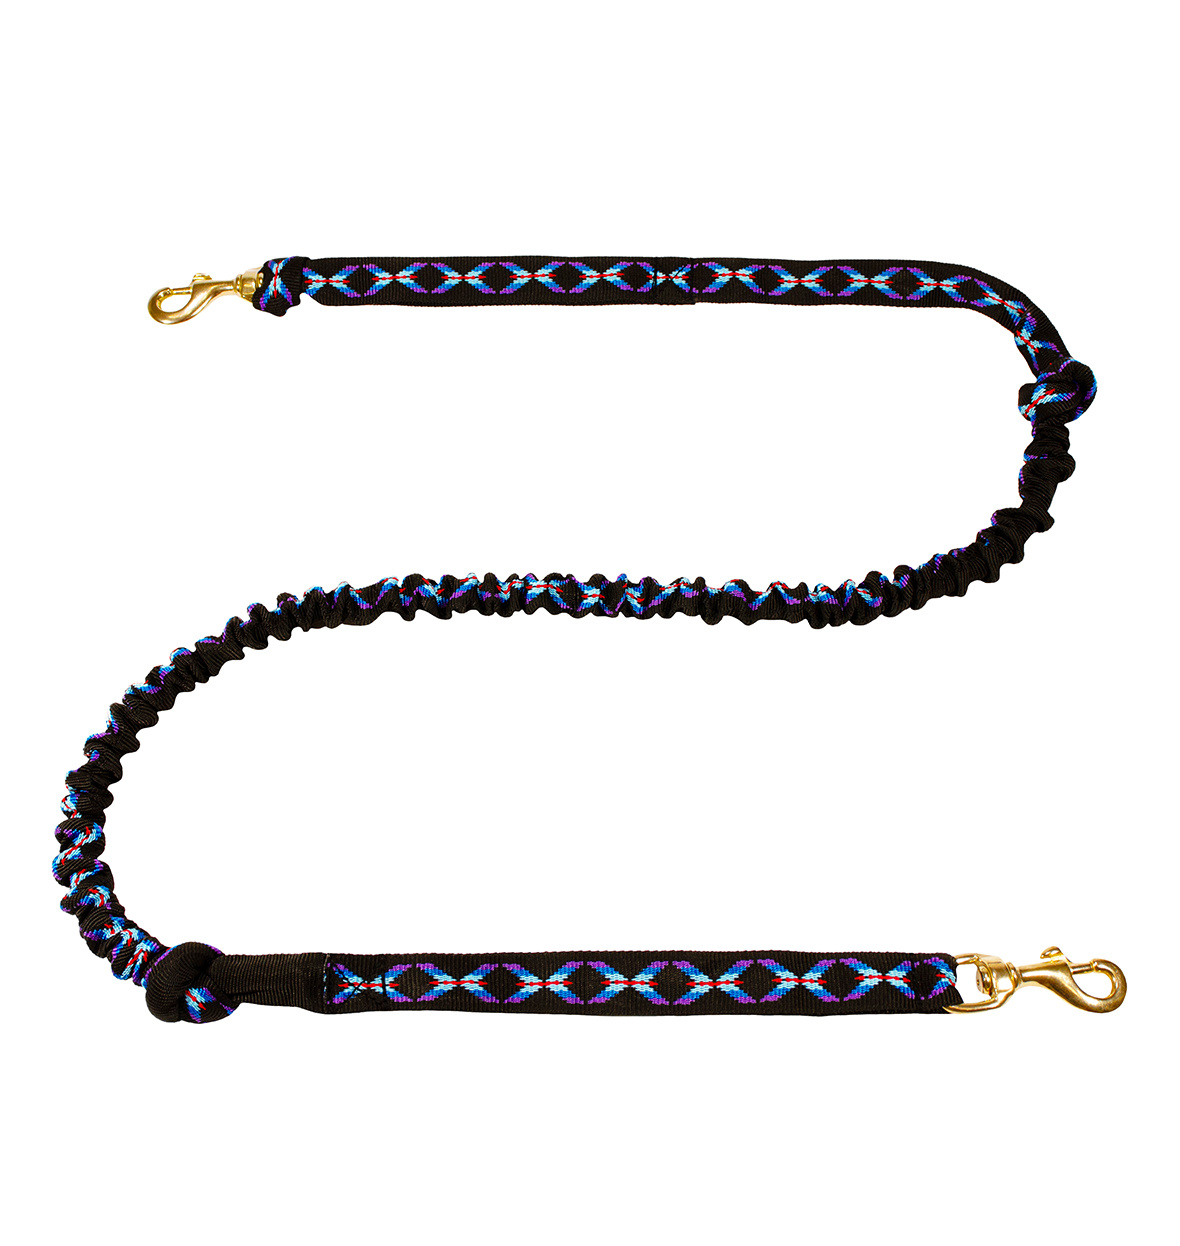 FBALasaLine LasaLine Hands free Dog Joring Leash -2 Carabiners -black